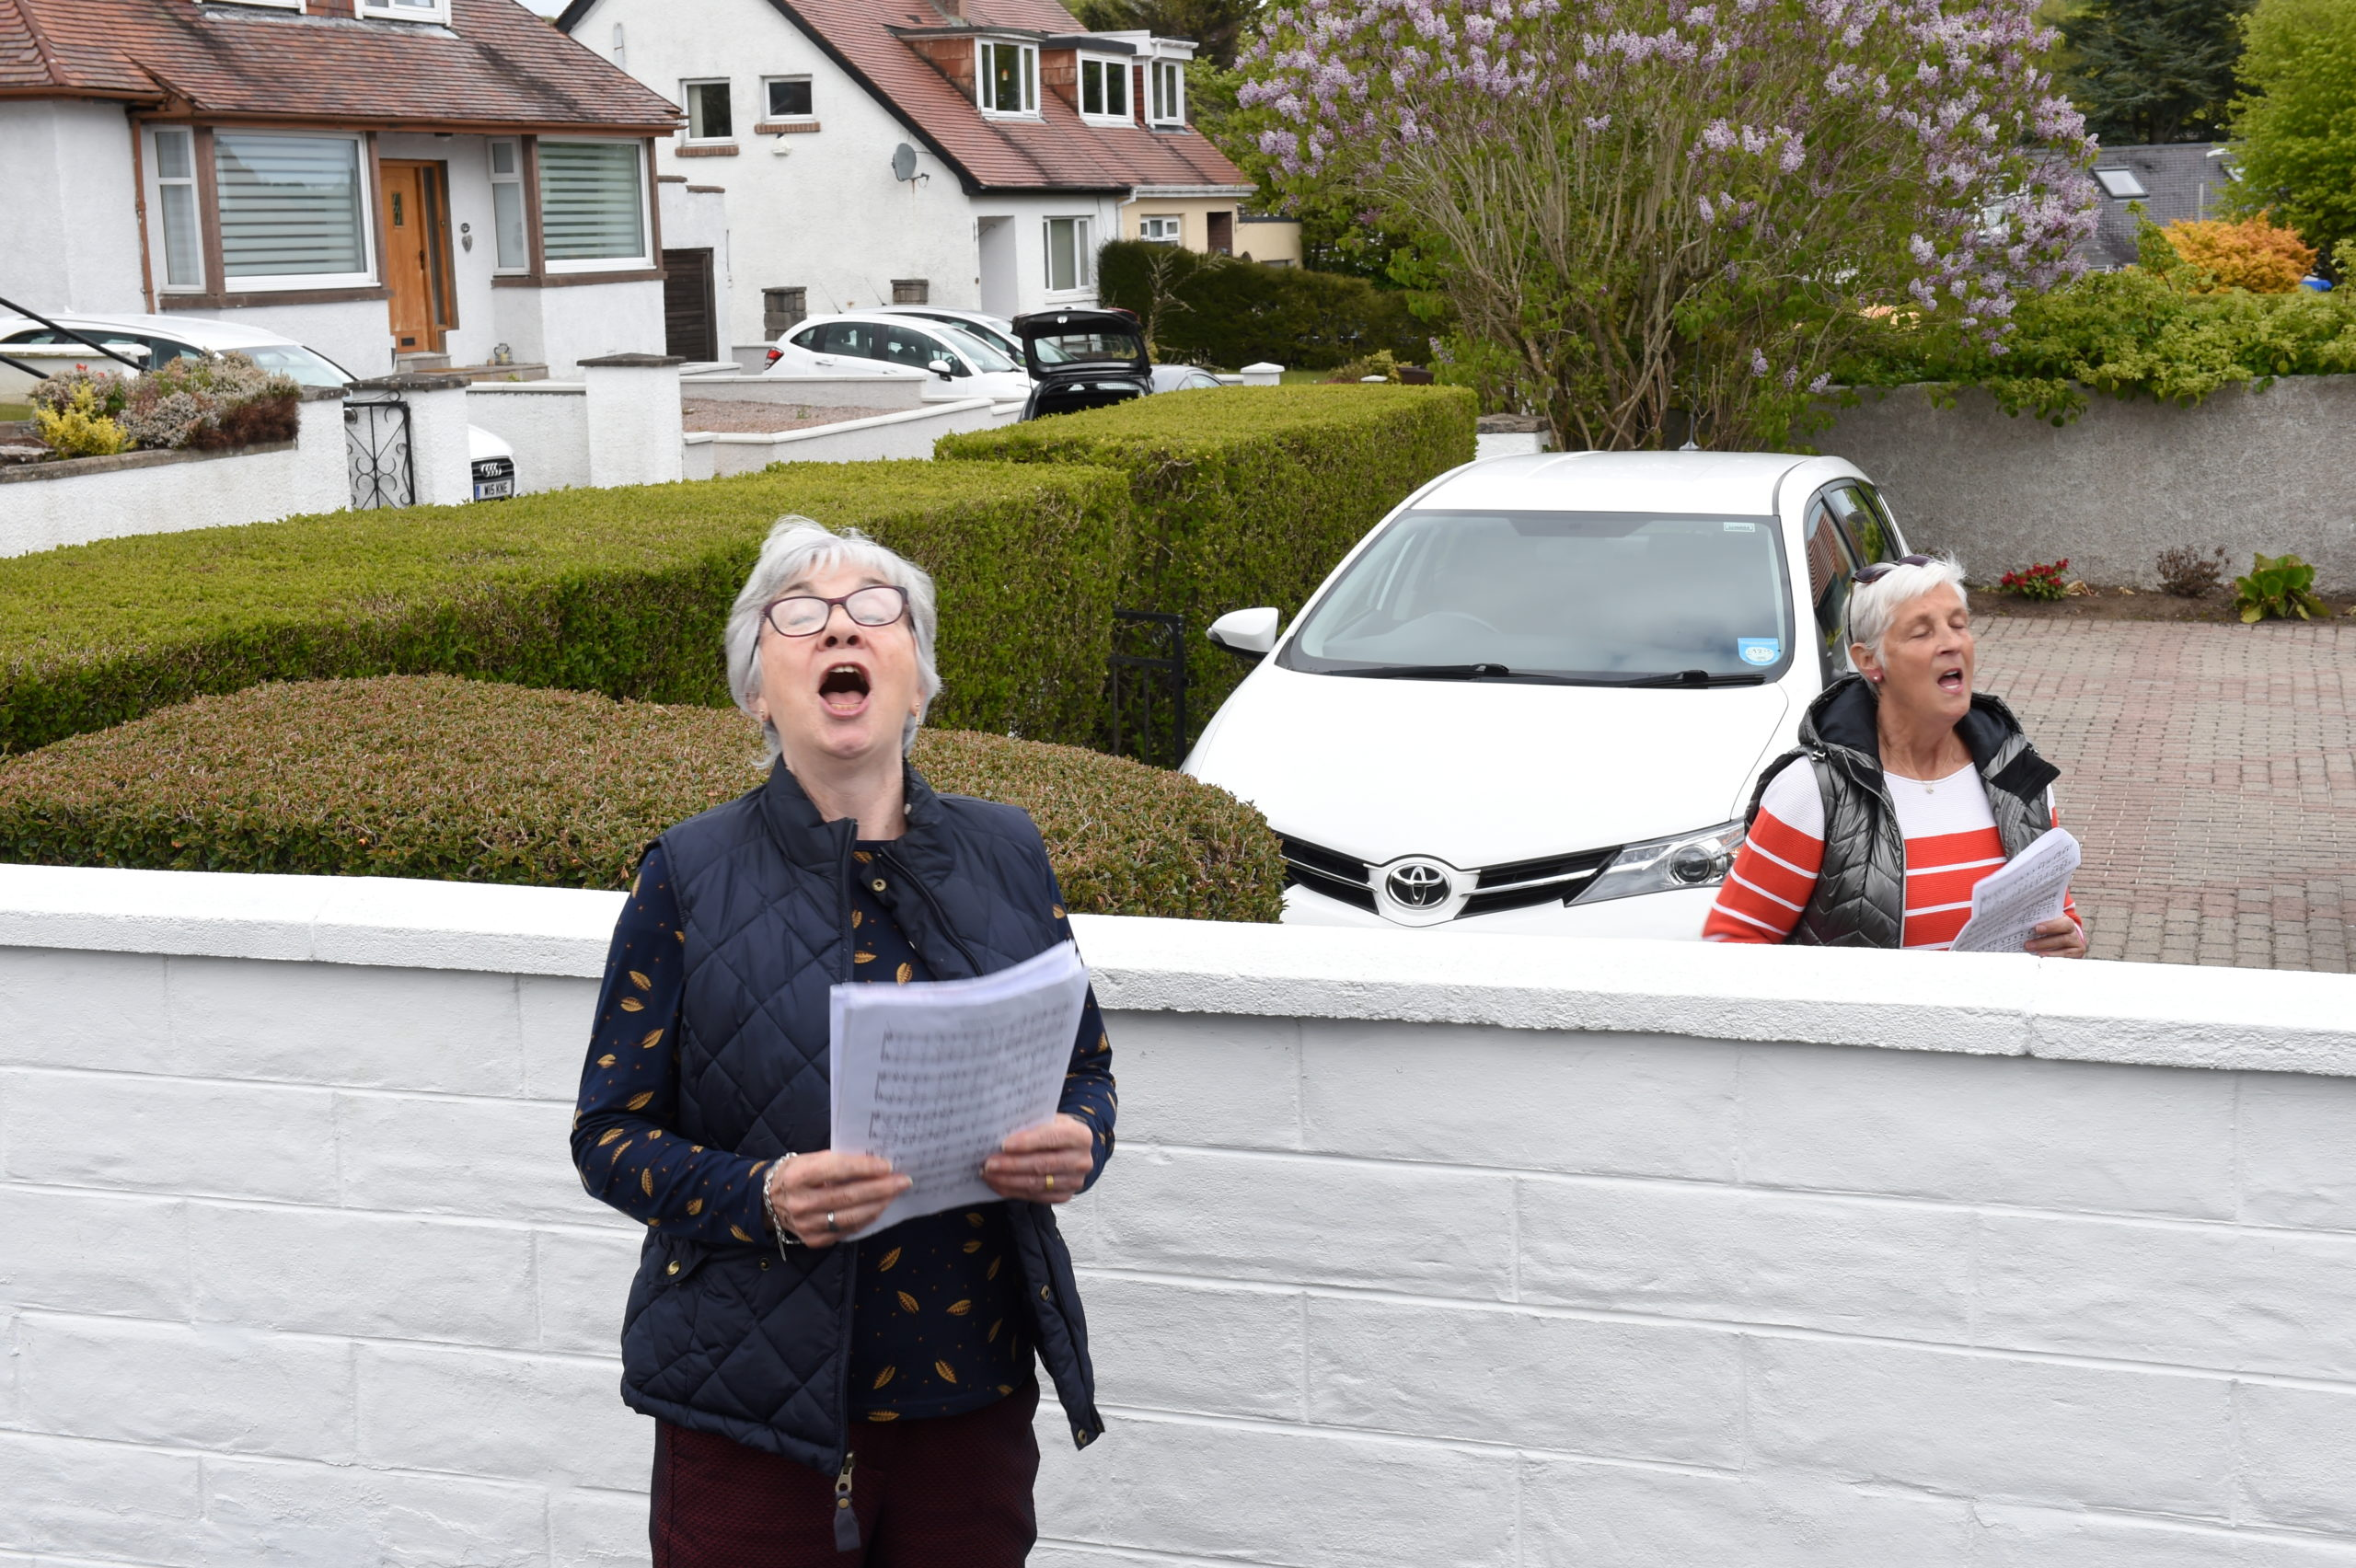 Cults neighbours Carolyn Hodsden and Christine Whitfield who sing four part harmony with the group B Natural practice together over the front garden wall as the group cannot meet due to Covid-19 restrictions